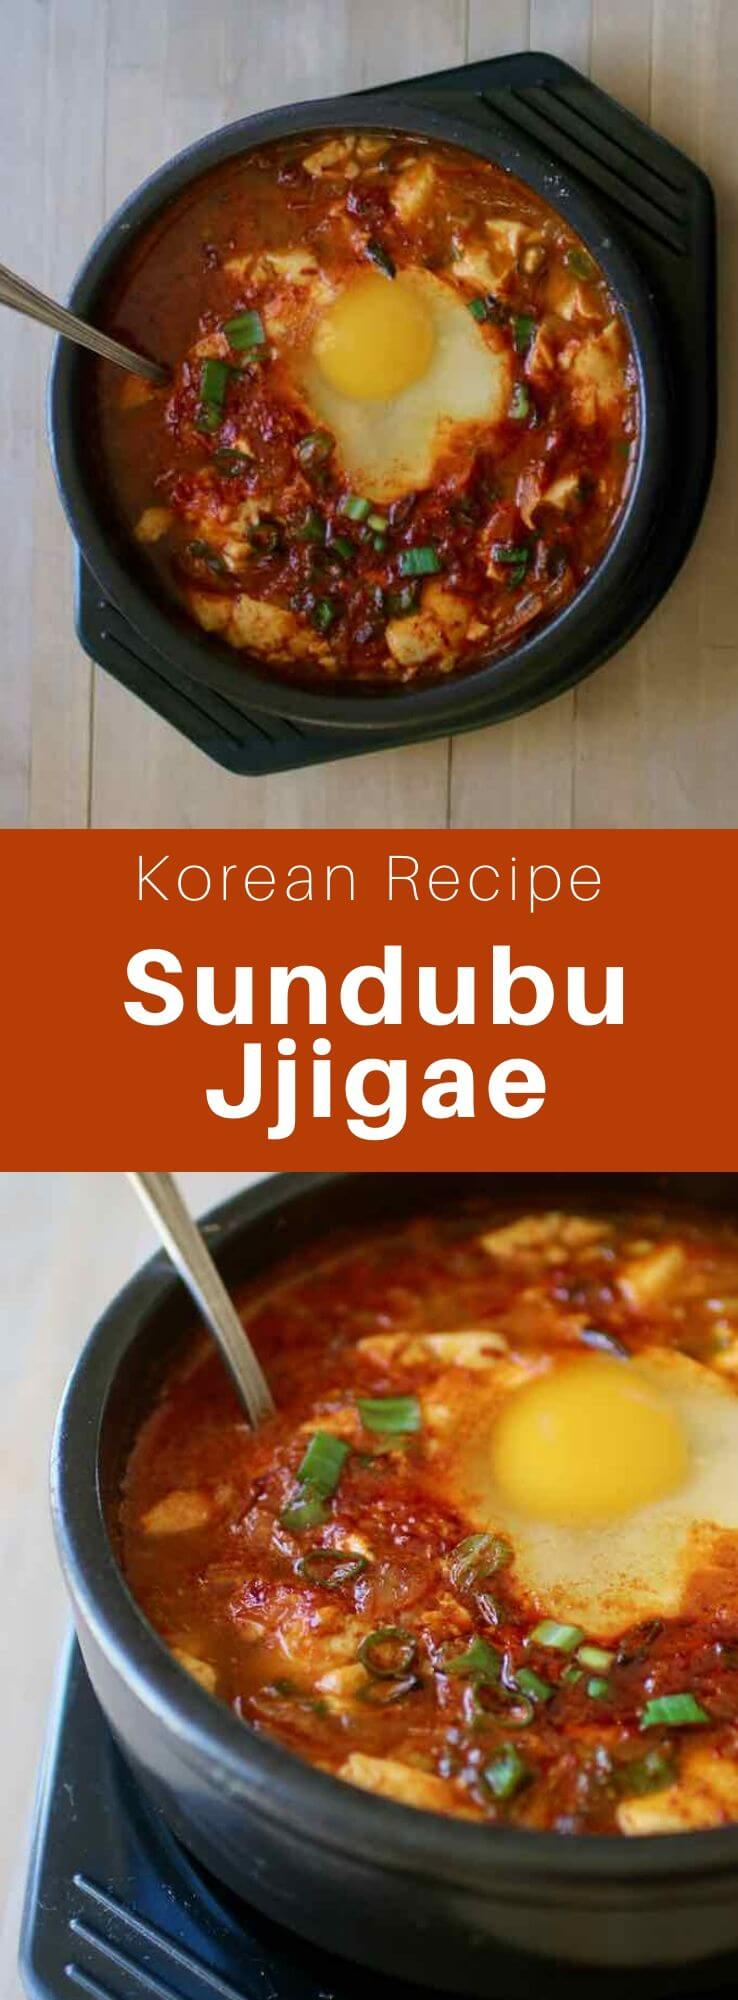 Sundubu jjigae is a traditional Korean dish, between a soup and stew, made with silky tofu, that is simmered in a spicy sauce. #KoreanFood #KoreanRecipe #KoreanCuisine #WorldCuisine #196flavors